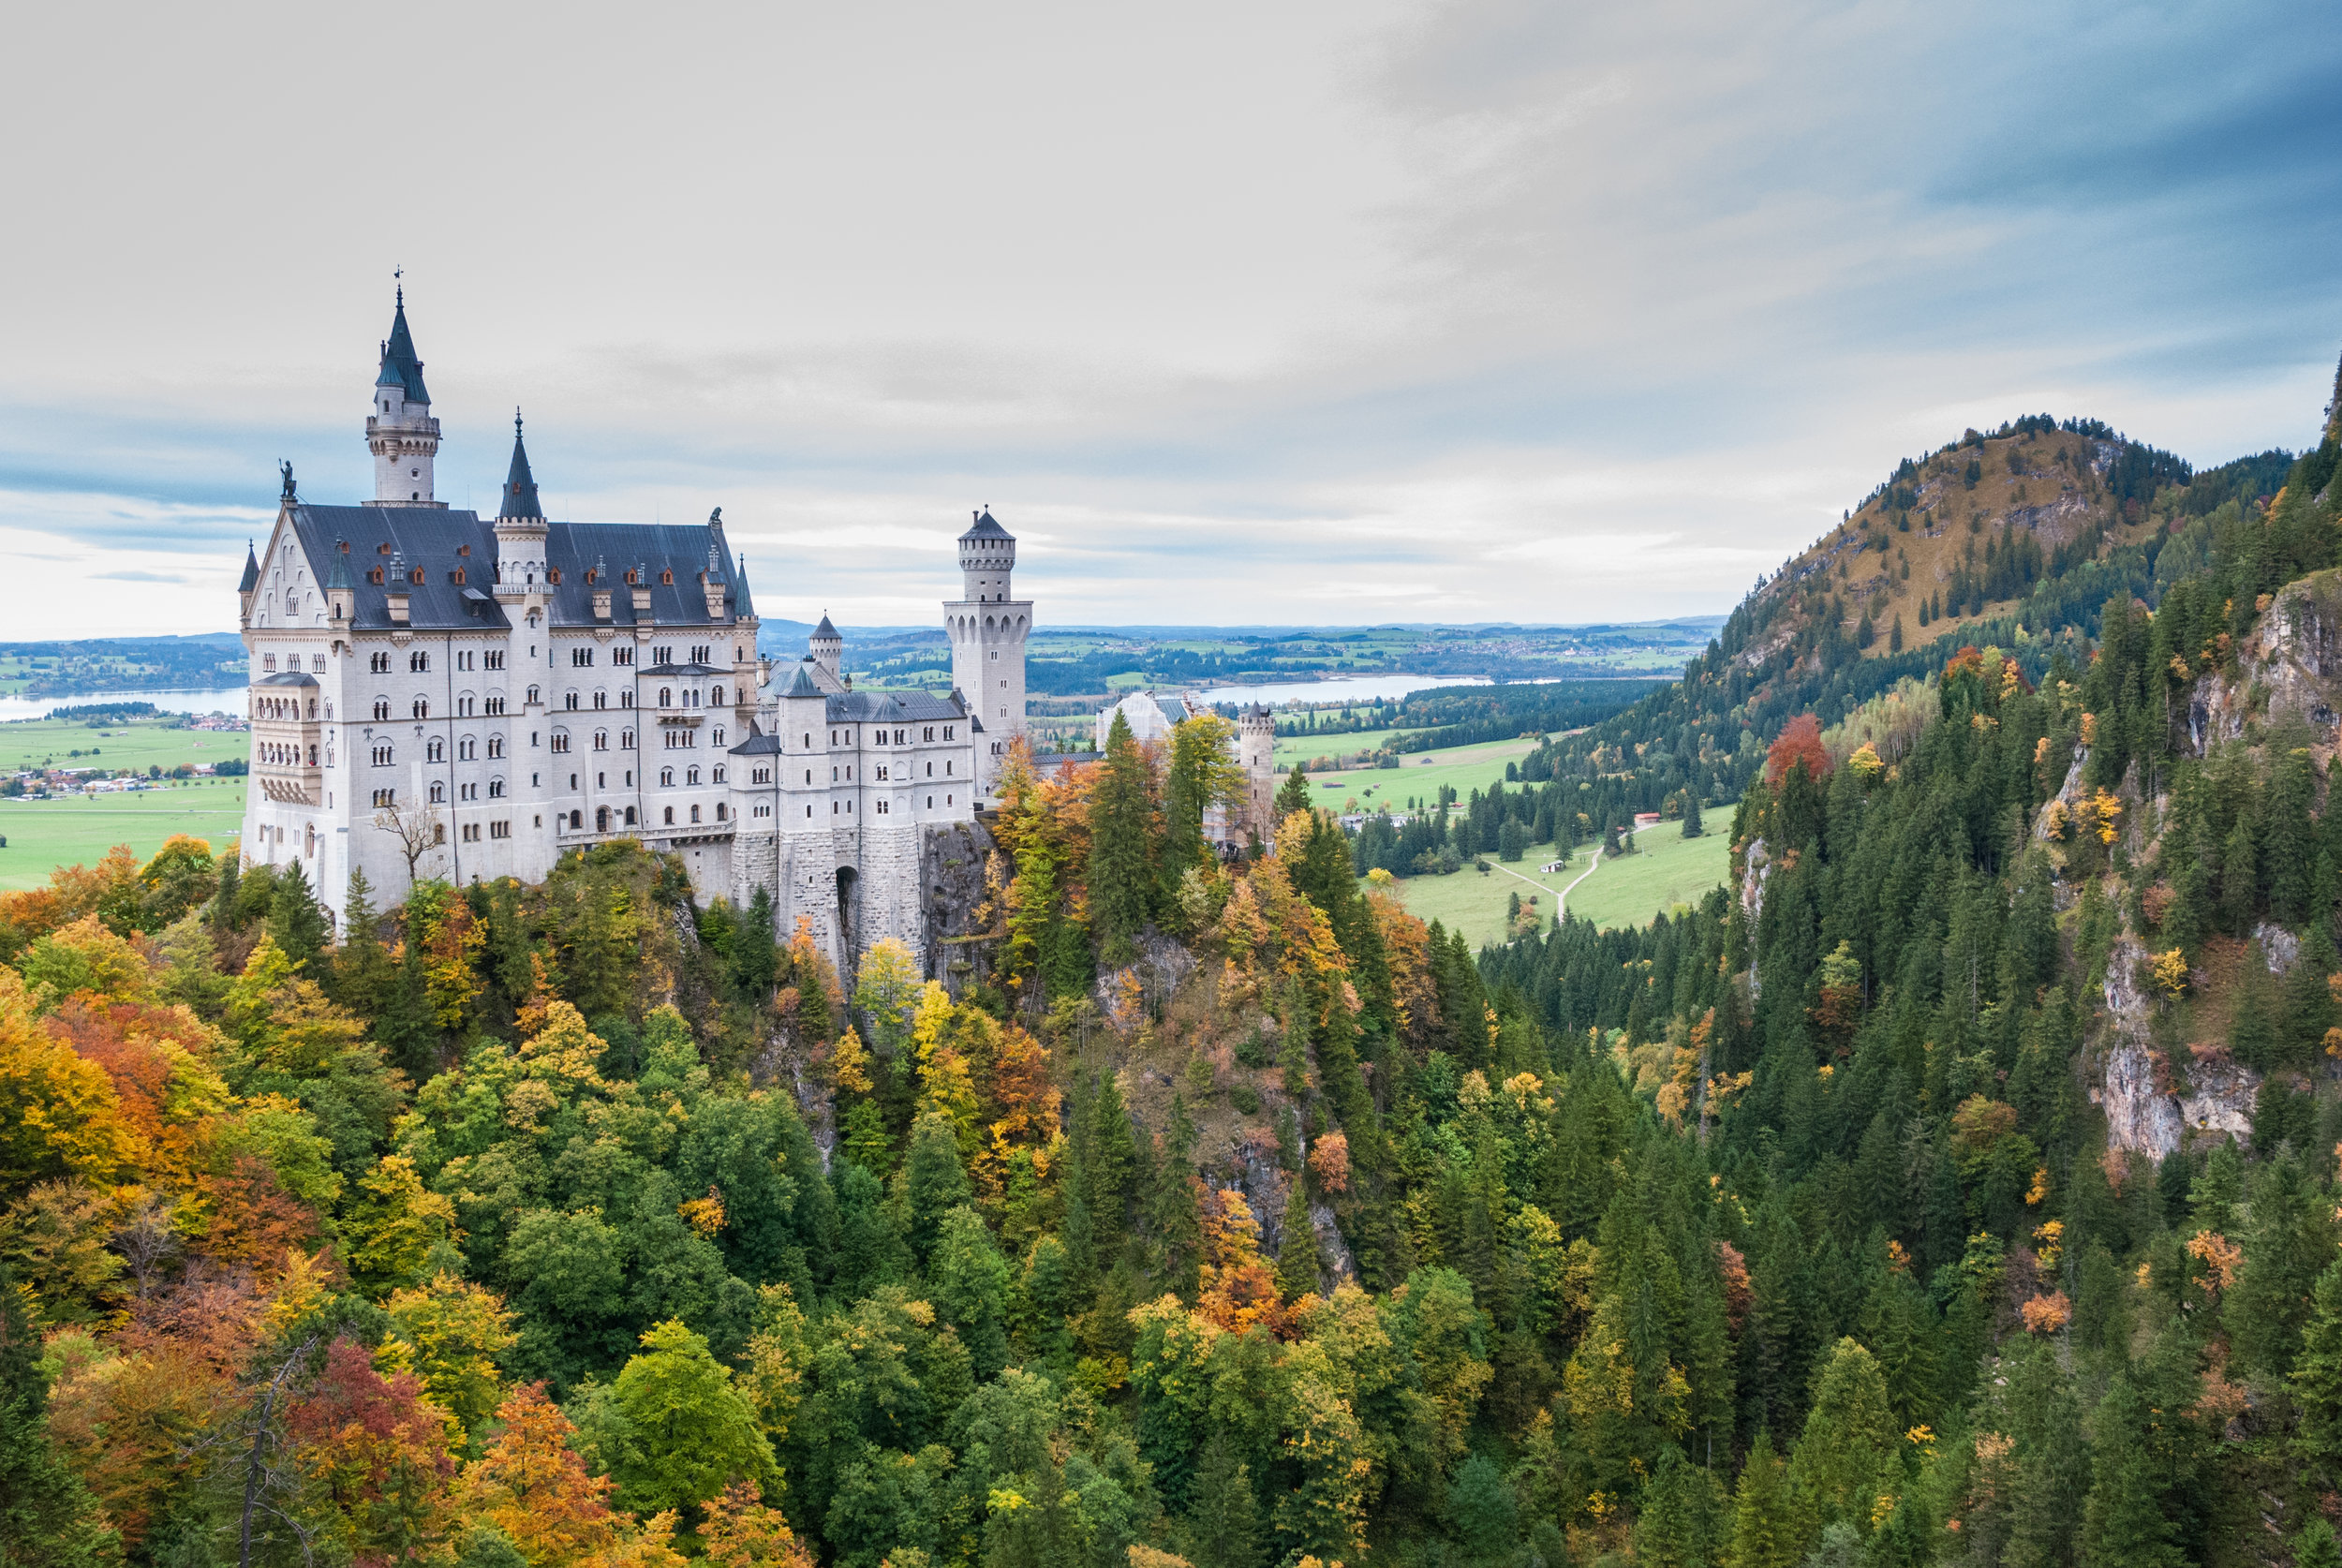 Neuschwanstein, or the so-called Disney Castle. Schwangau, Germany